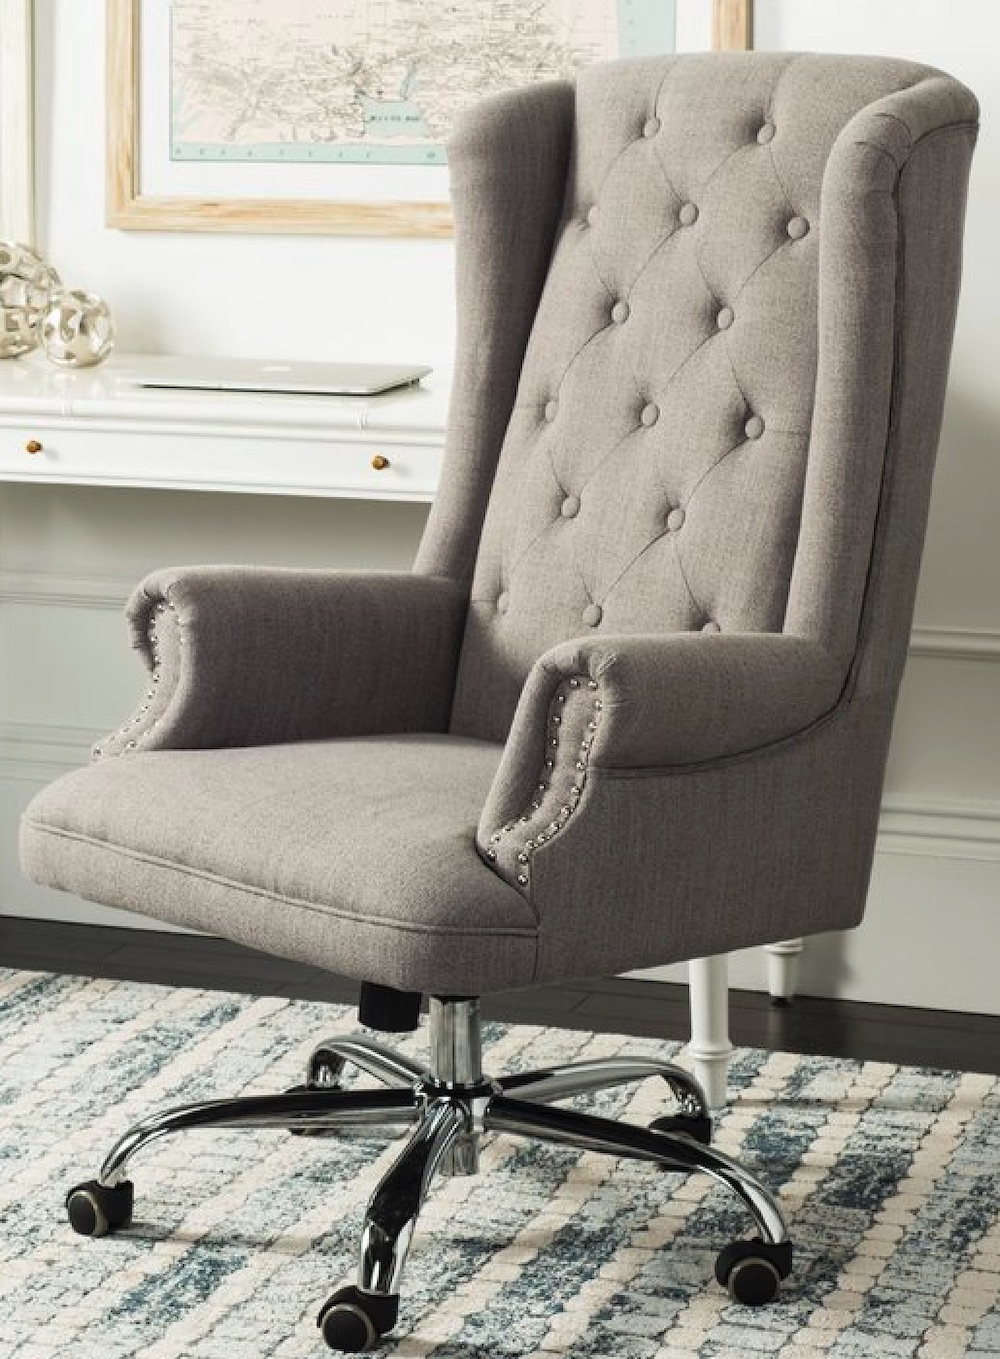 Chairs for Your Workspace Ranae Office Chair #DeskChairs #HomeOffice #HomeOfficeDeskChairs #OfficeChairs #Decor #FarmhouseDecor #WorkingMoms #WorkFromHome